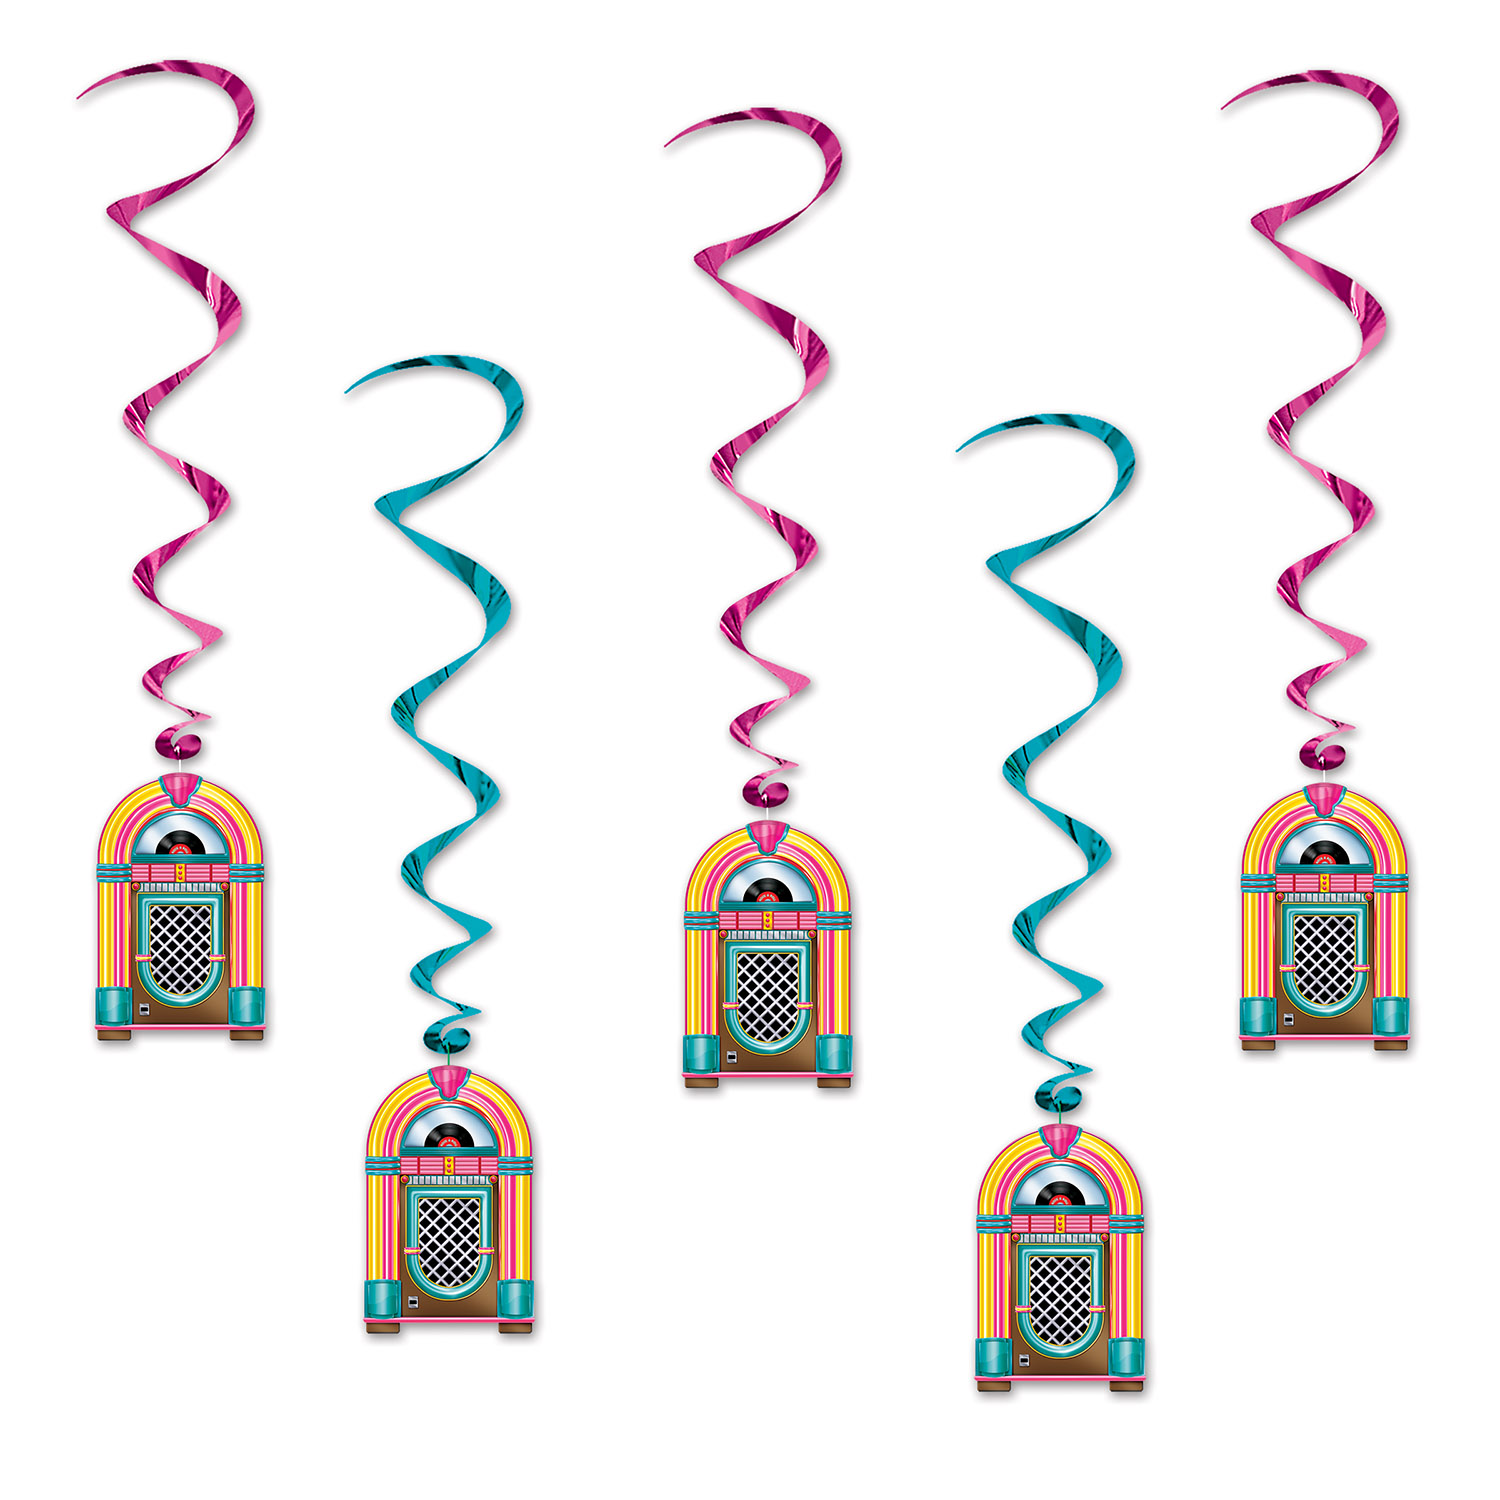 Jukebox Whirls (Pack of 30) jukebox, 50s, rock and role, music, hanging decorations